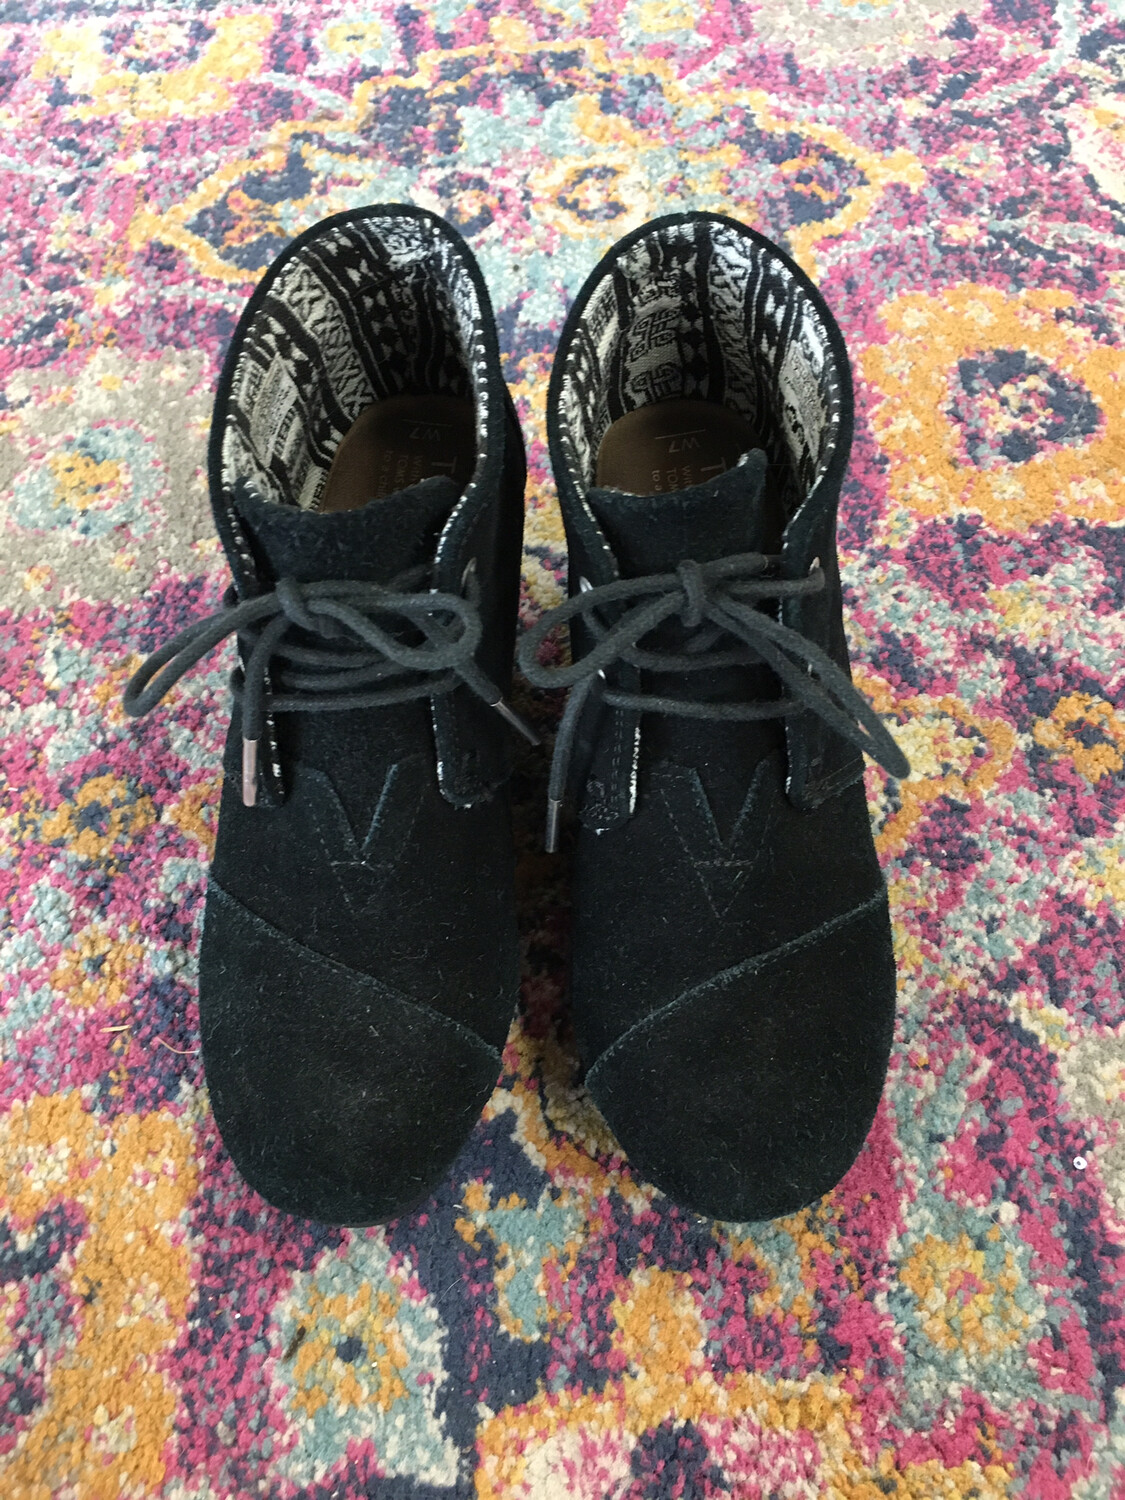 Tom's Black Lace Up Booties - Size 7W